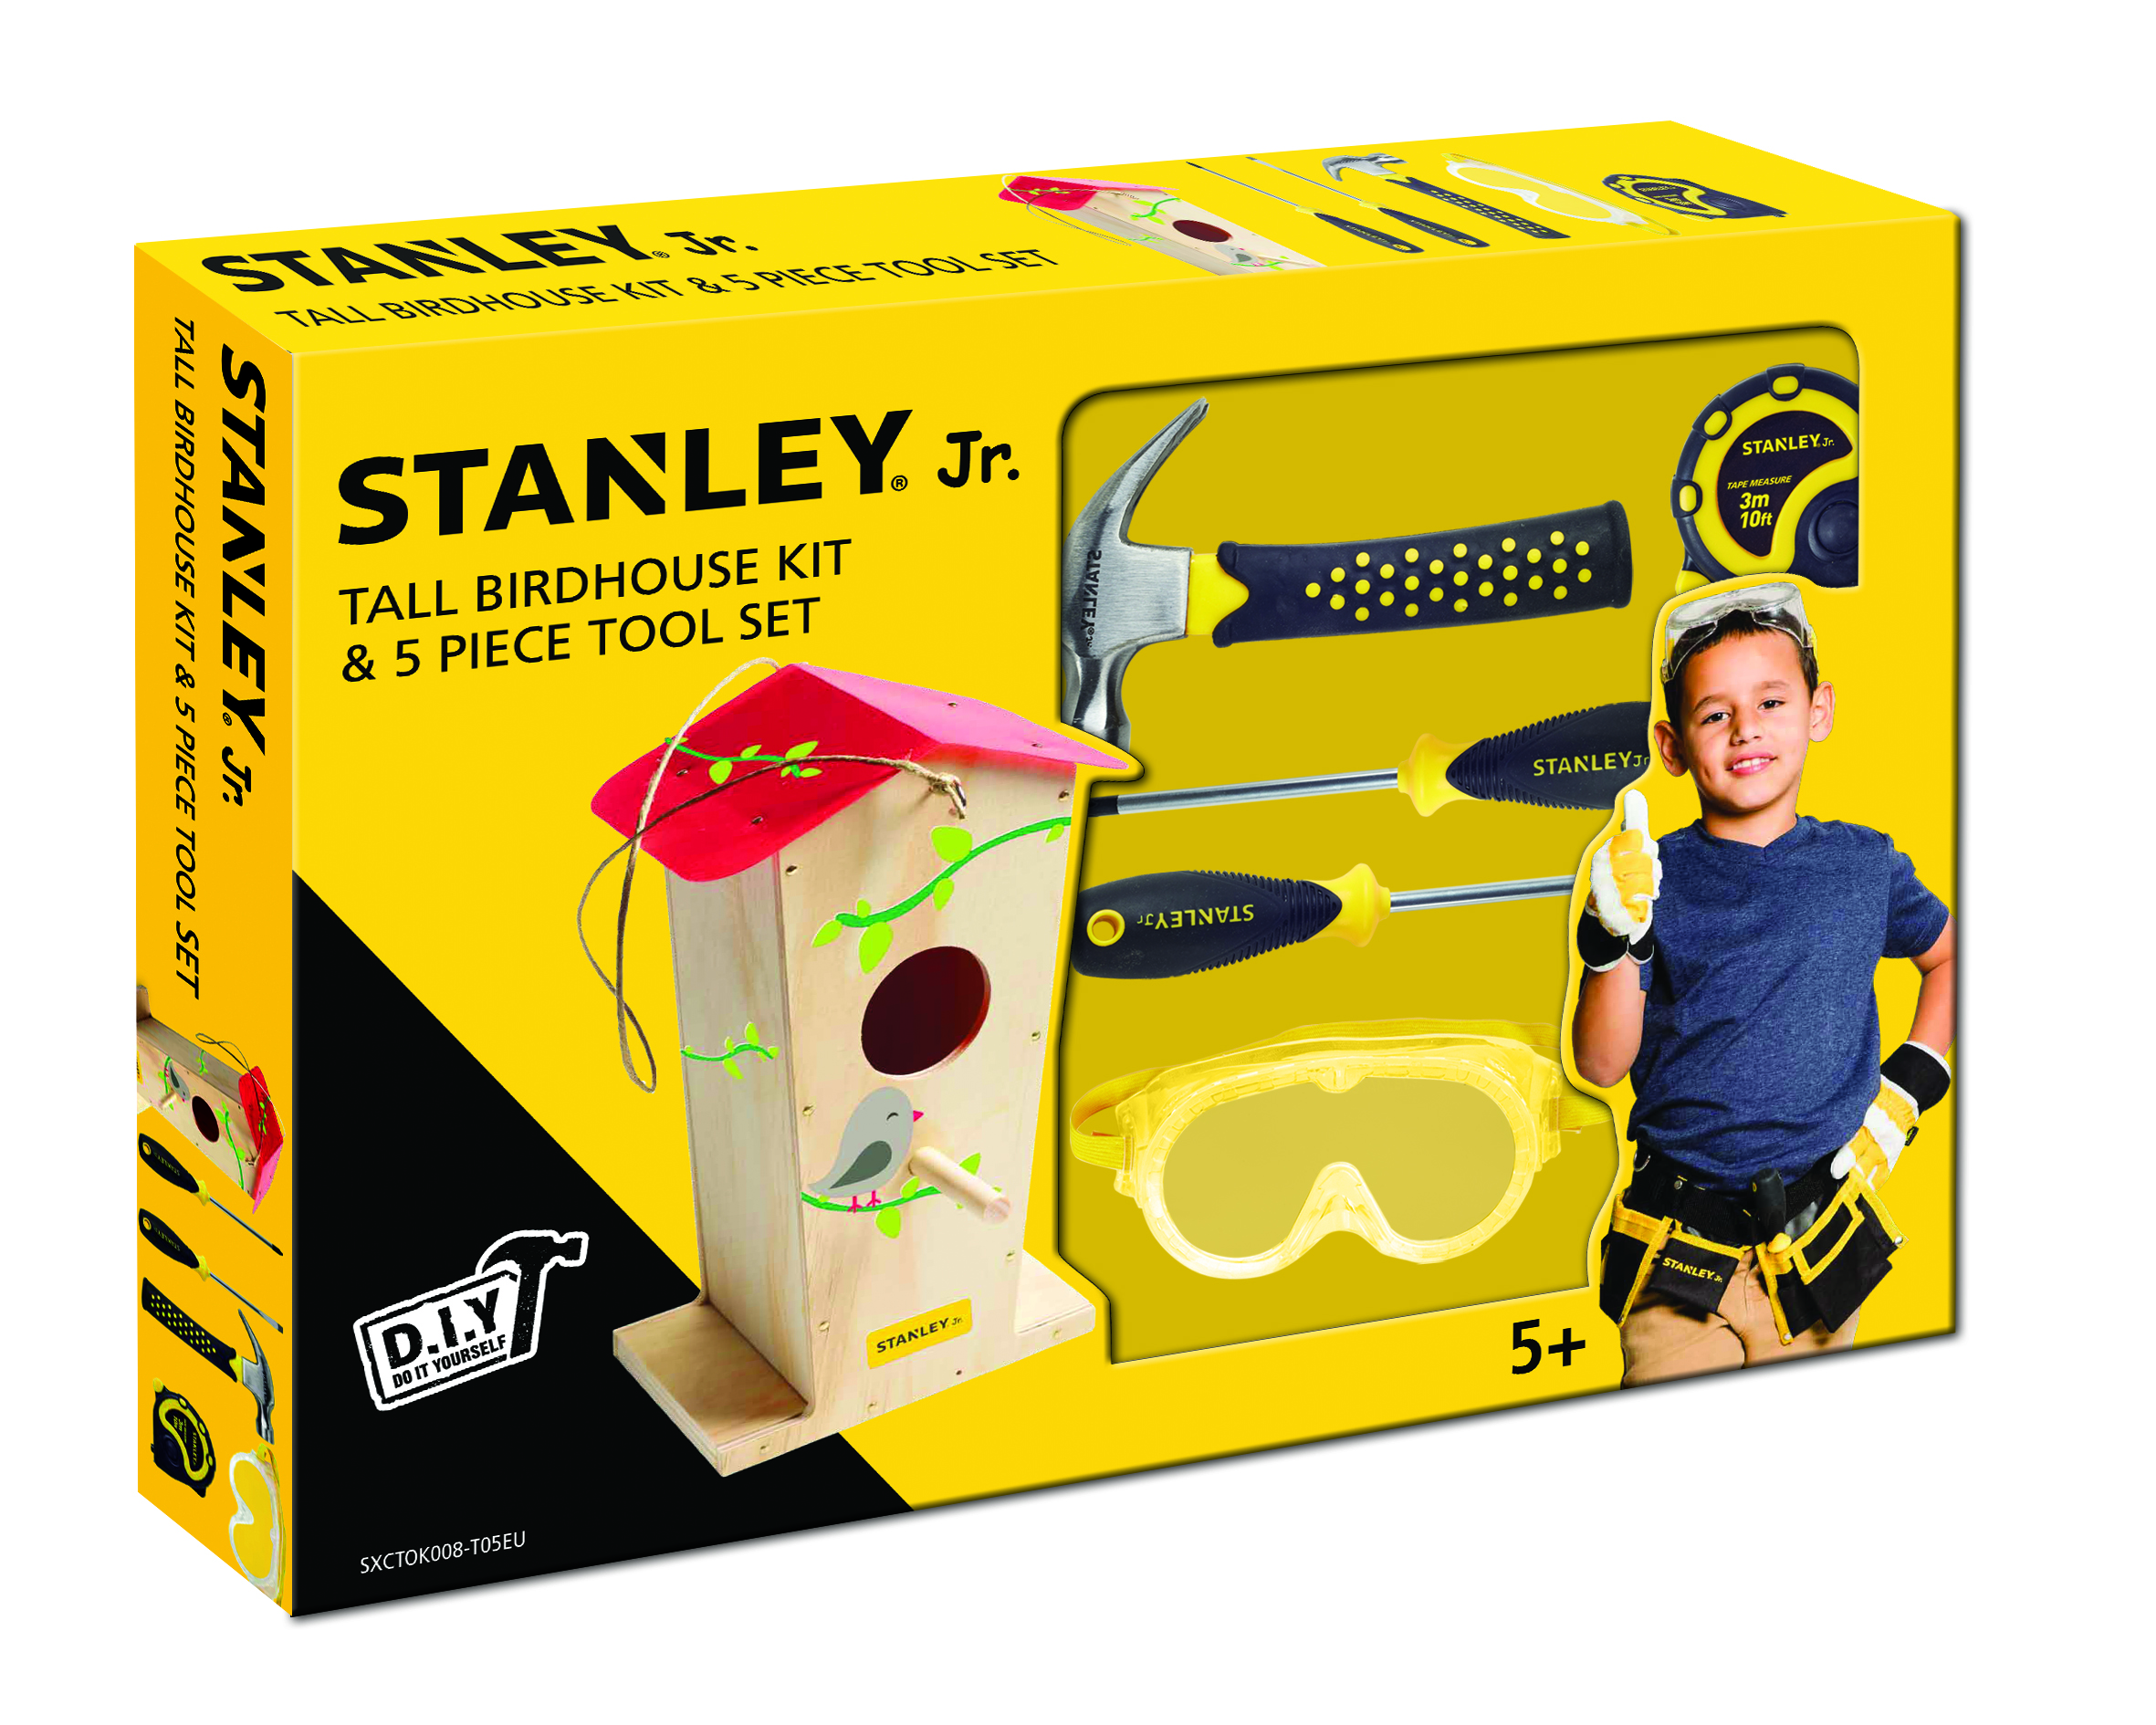 Stanley - Toolkit with Birdhouse (STOK008-T05-SY)